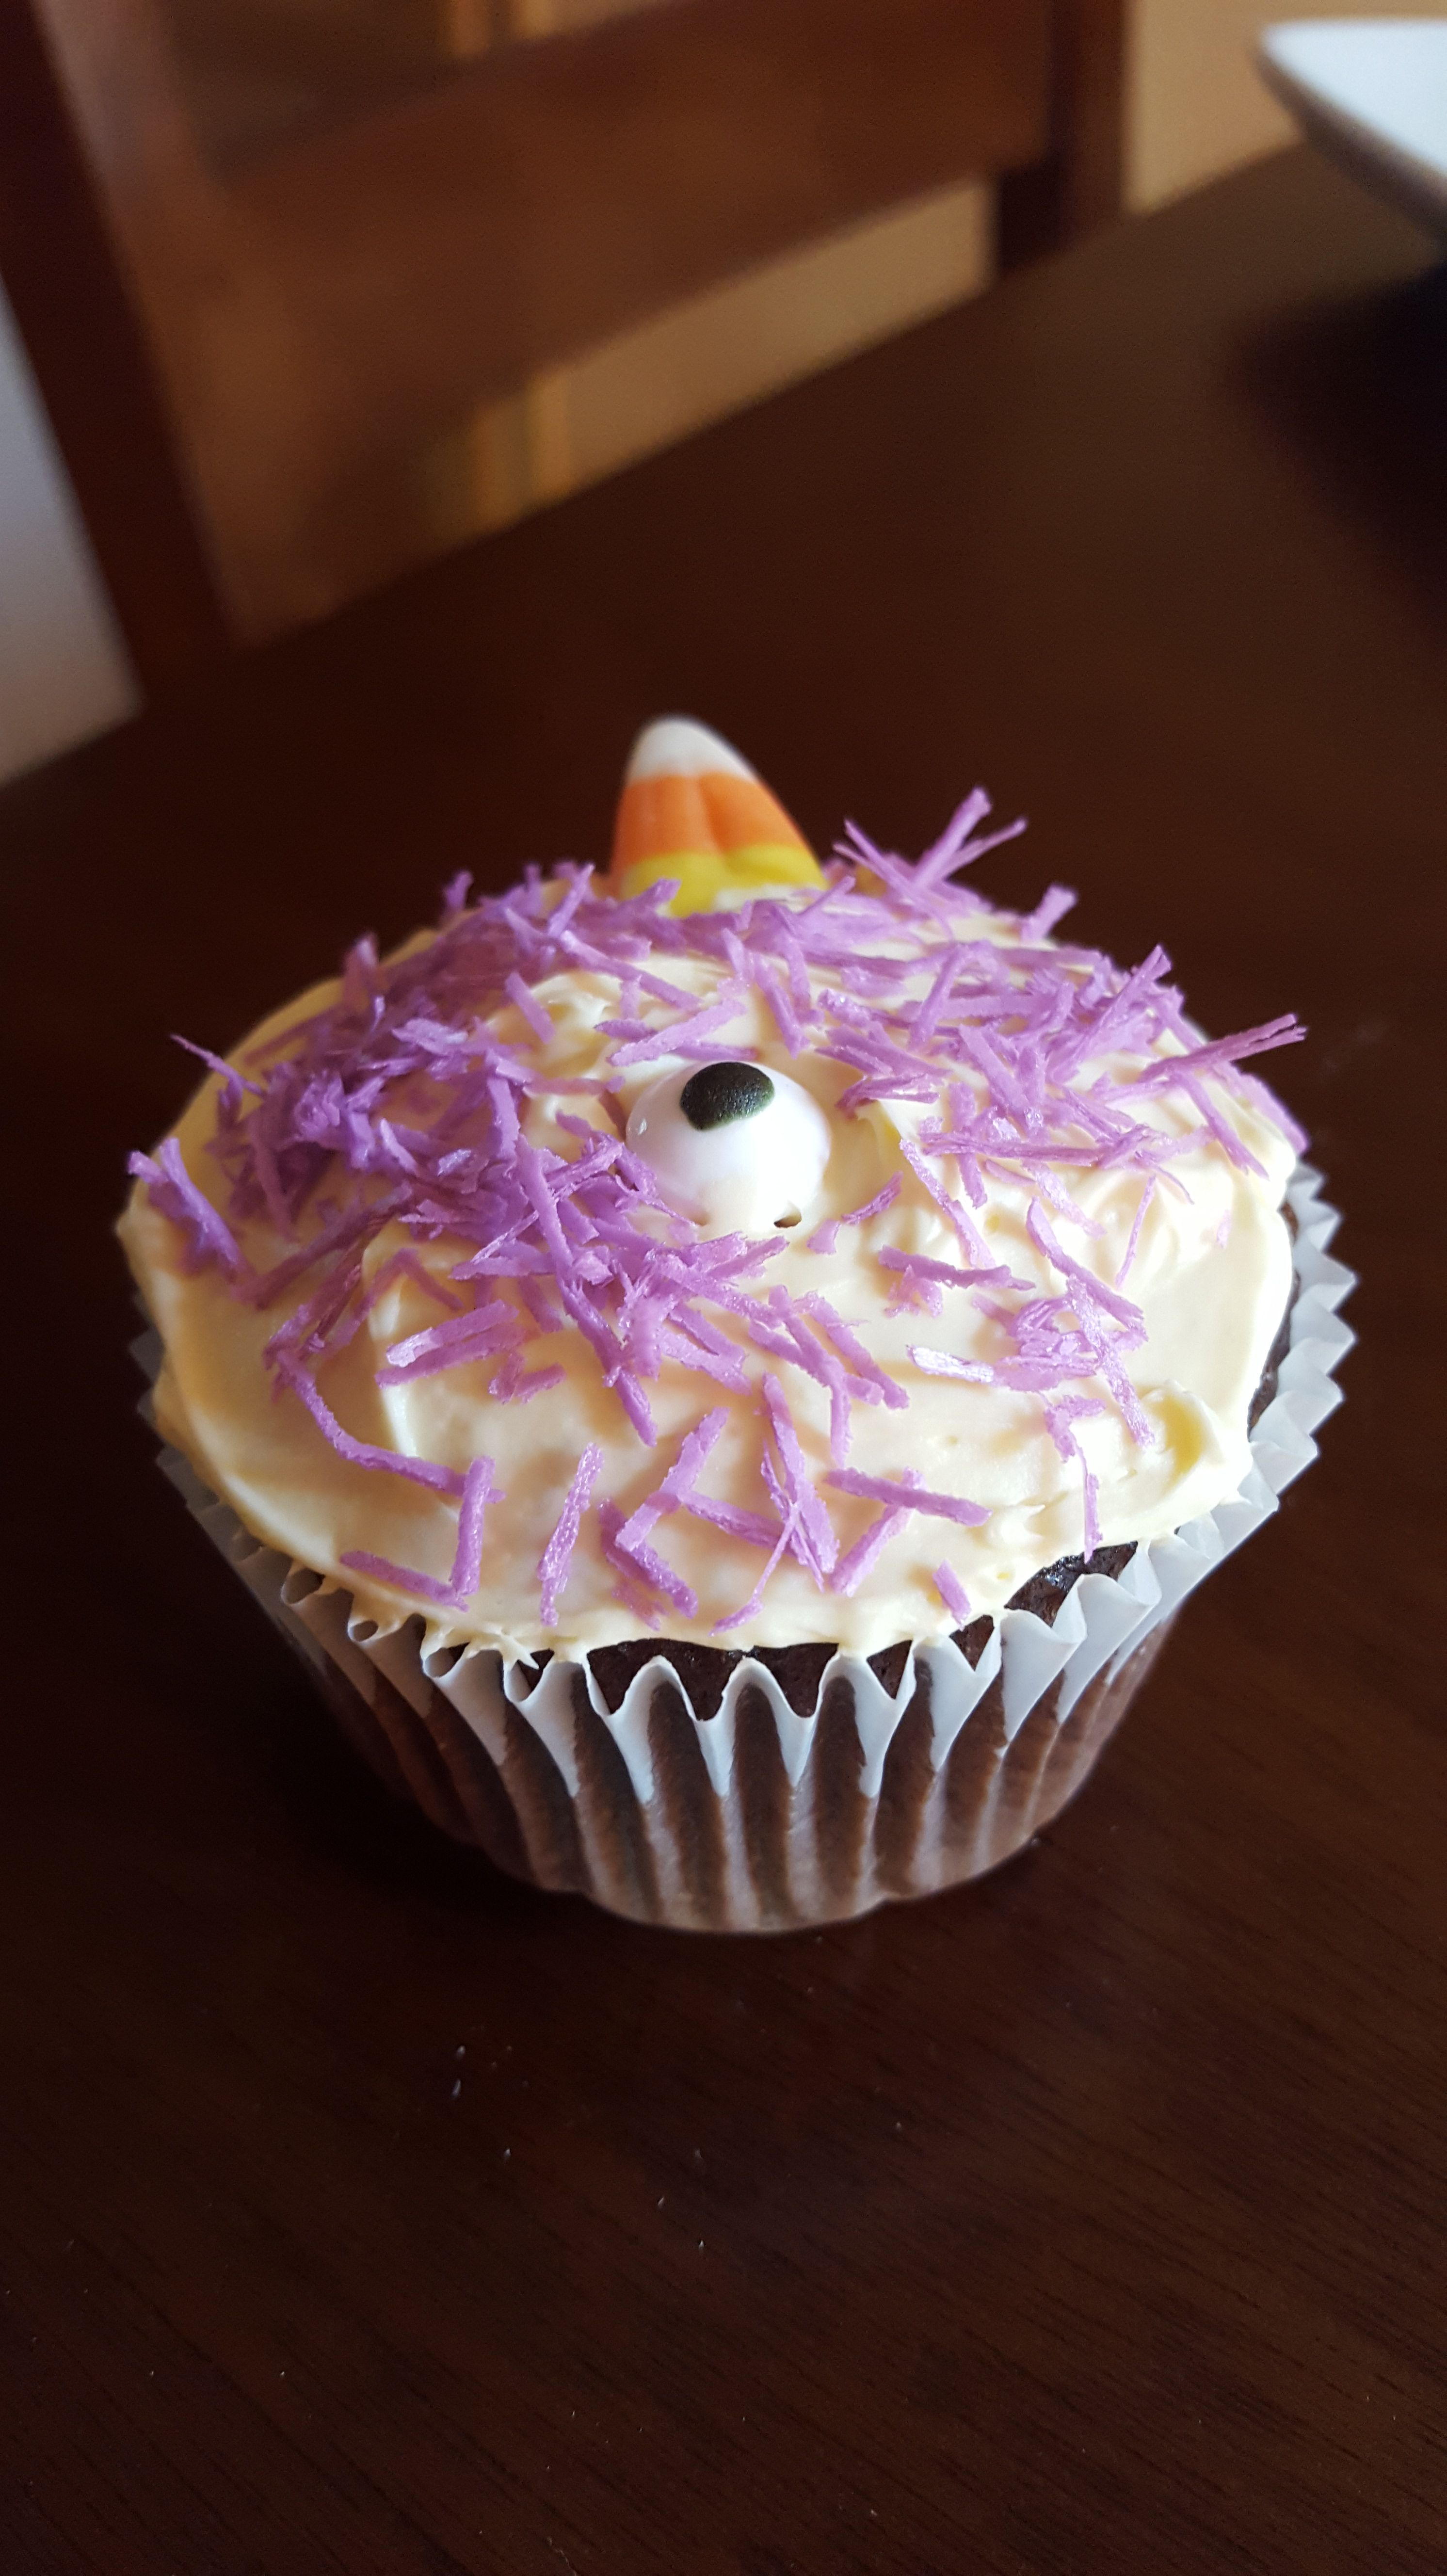 One-eyed, one-horned, flying, purple, people-eater cupcake ...